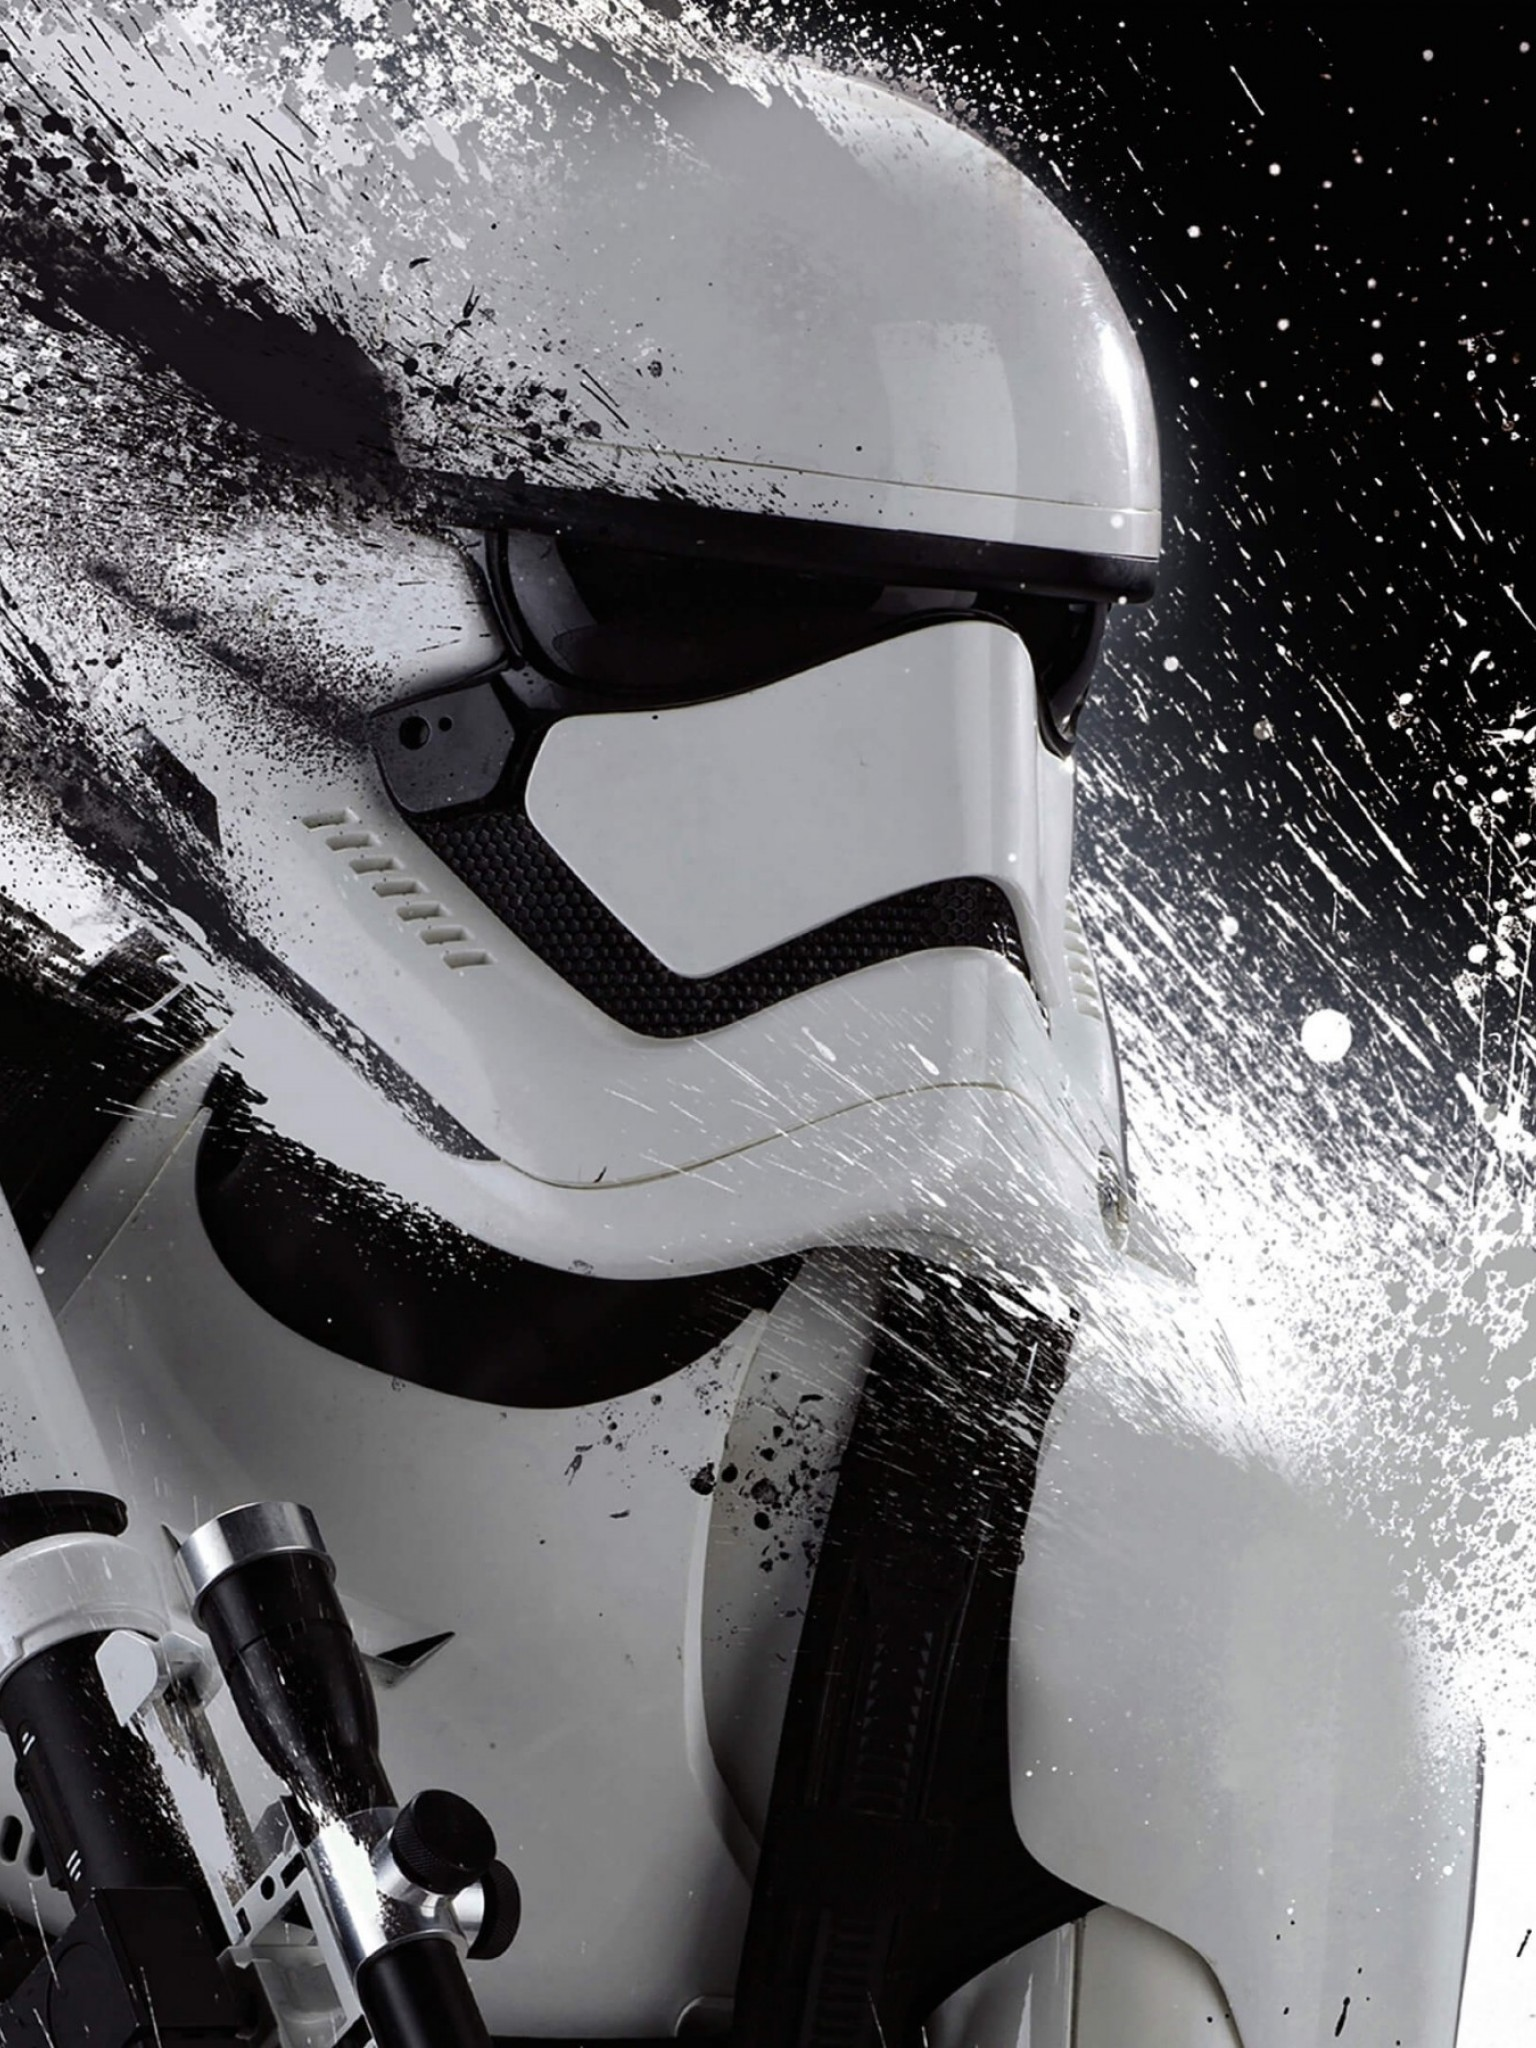 Star Wars Stormtrooper Hd Wallpaper for Desktop and Mobiles